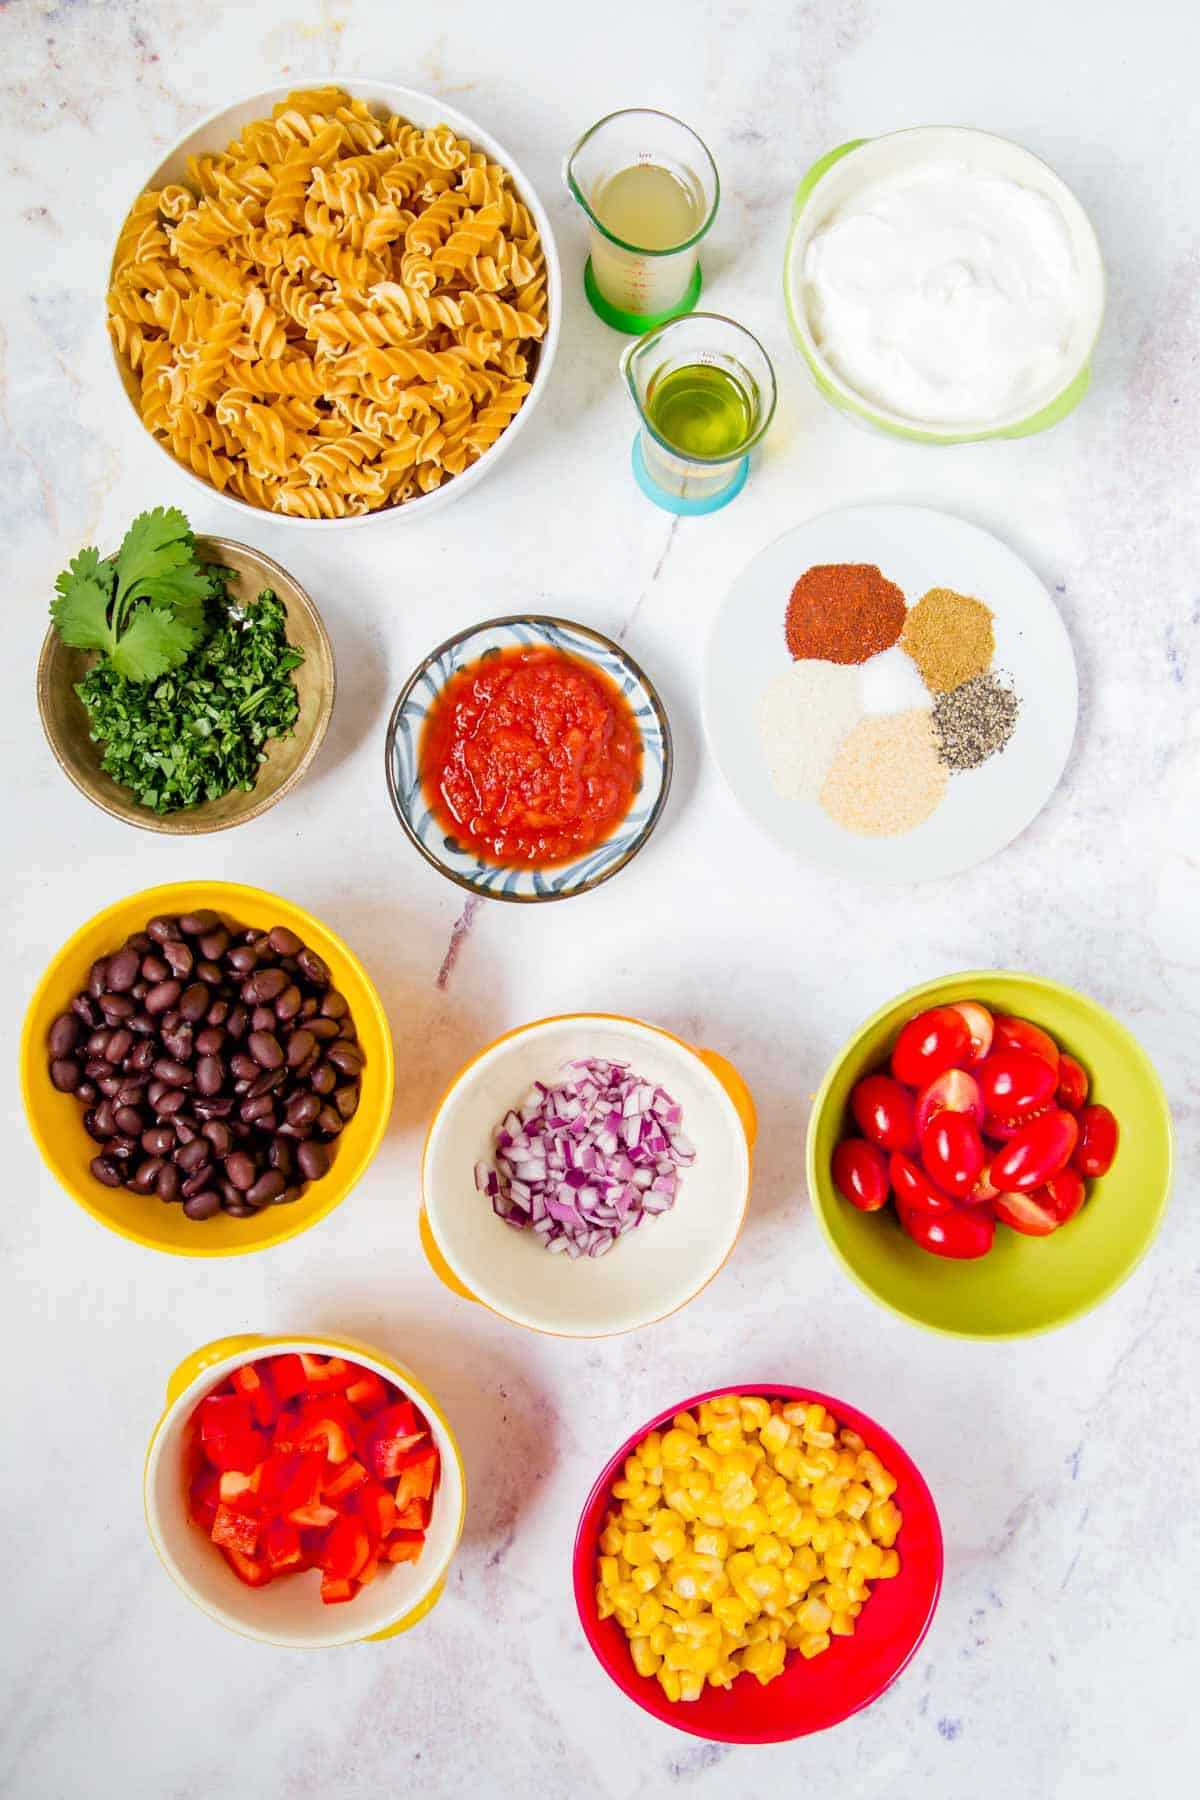 bowls of uncooked pasta, corn, black beans, chopped red pepper, halved grape tomatoes, minced red onion, greek yogurt, salsa, and cilantro, olive oil and vinegar in small measuring beakers, and a plate with spices